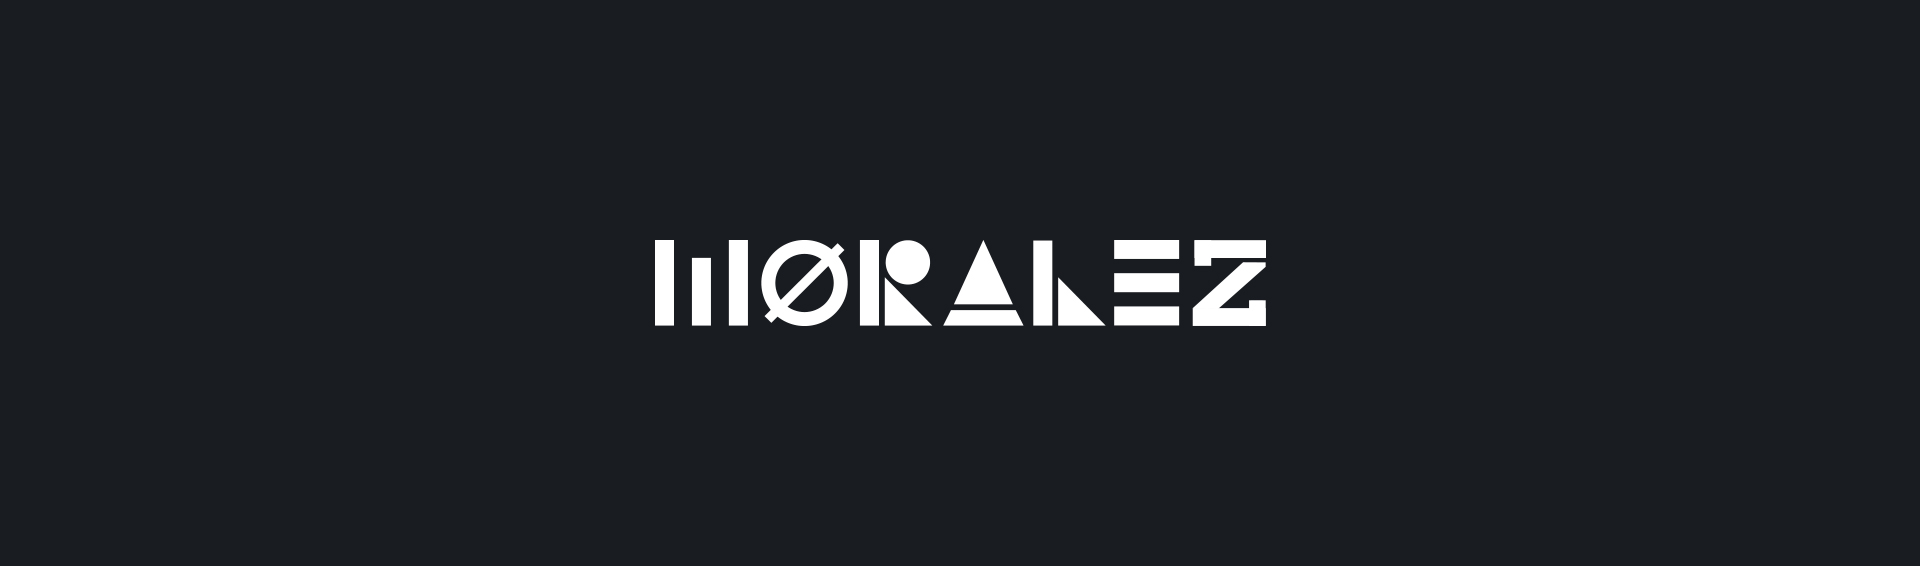 moralez_logotype_identity_corporate